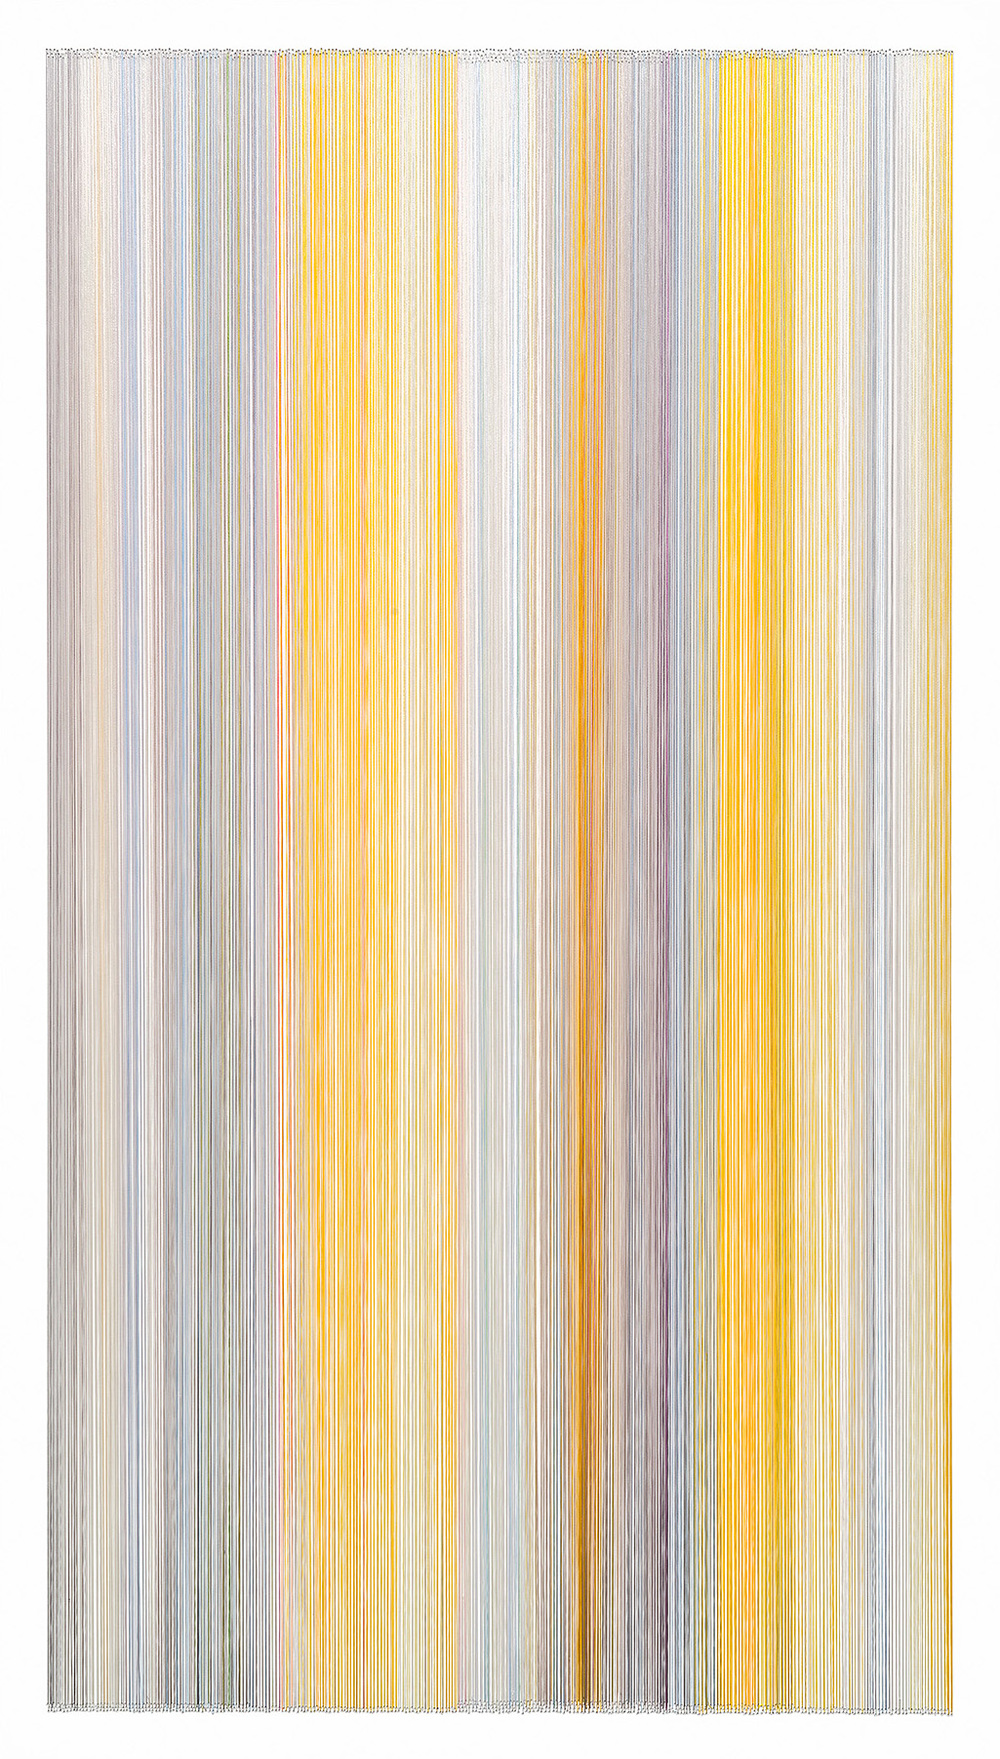 thread drawing 32  2014 rayon thread 42 by 24 inches